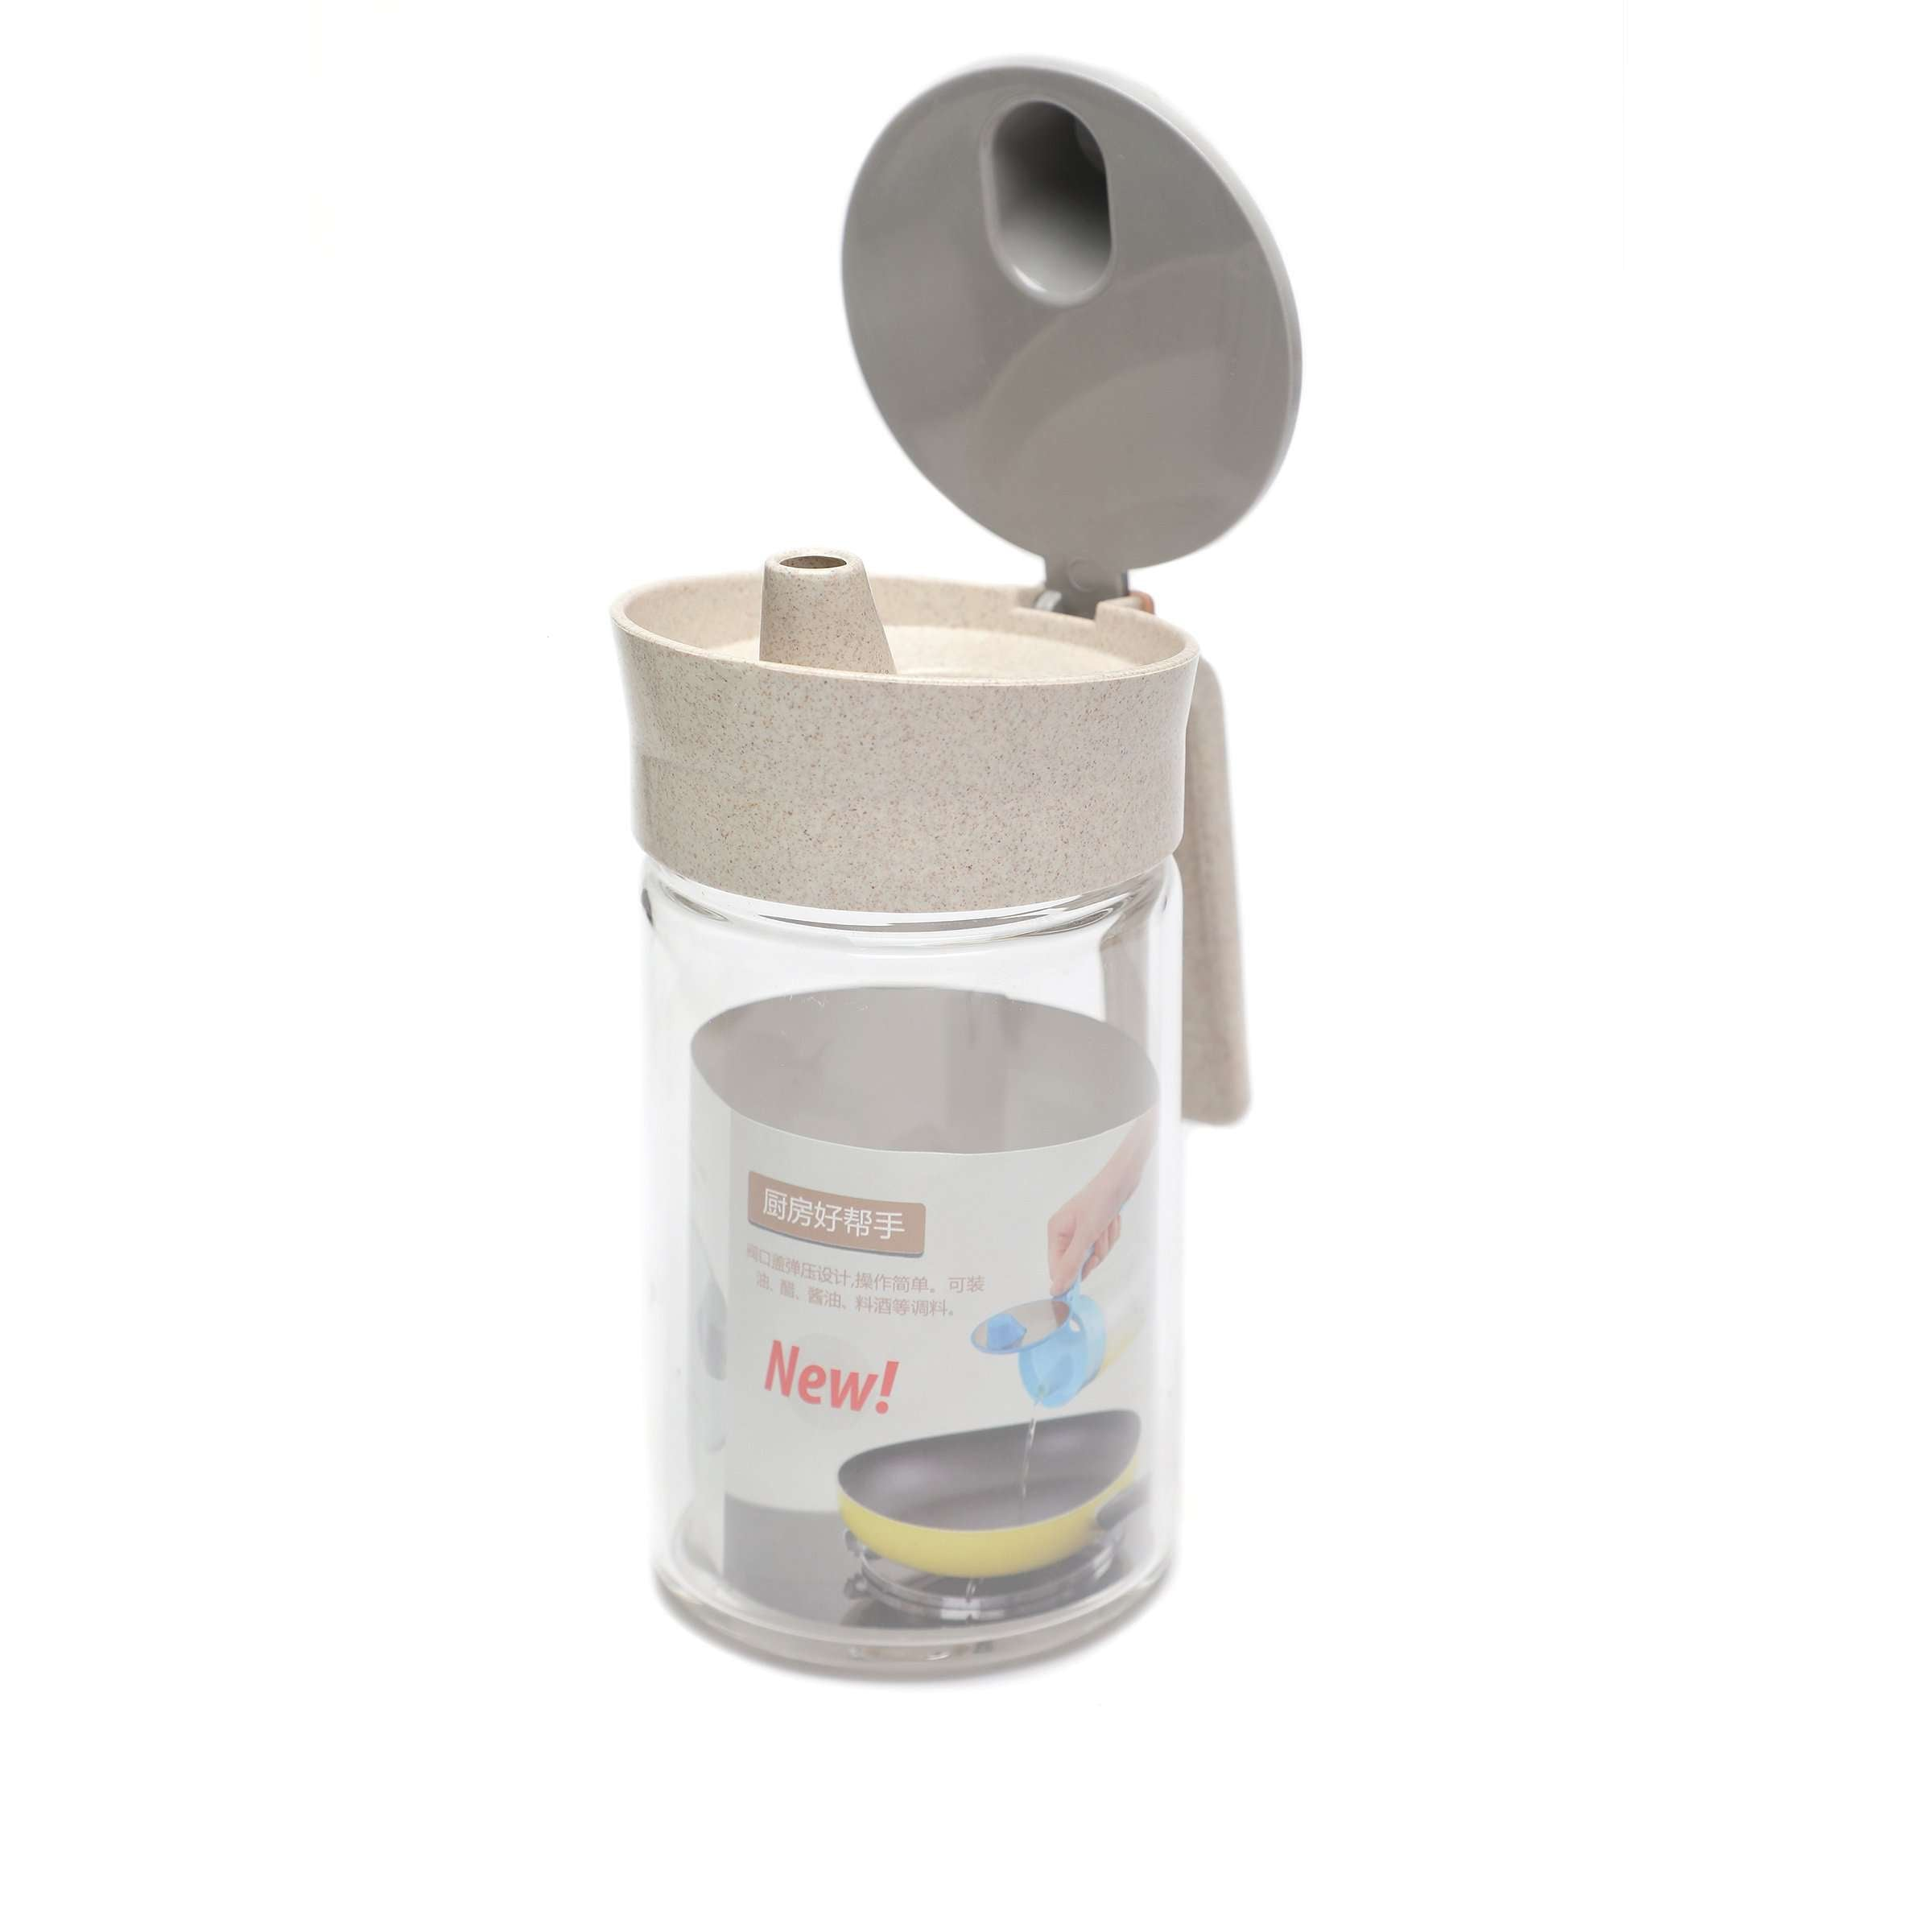 Oil Pourer and Dispenser with Handle